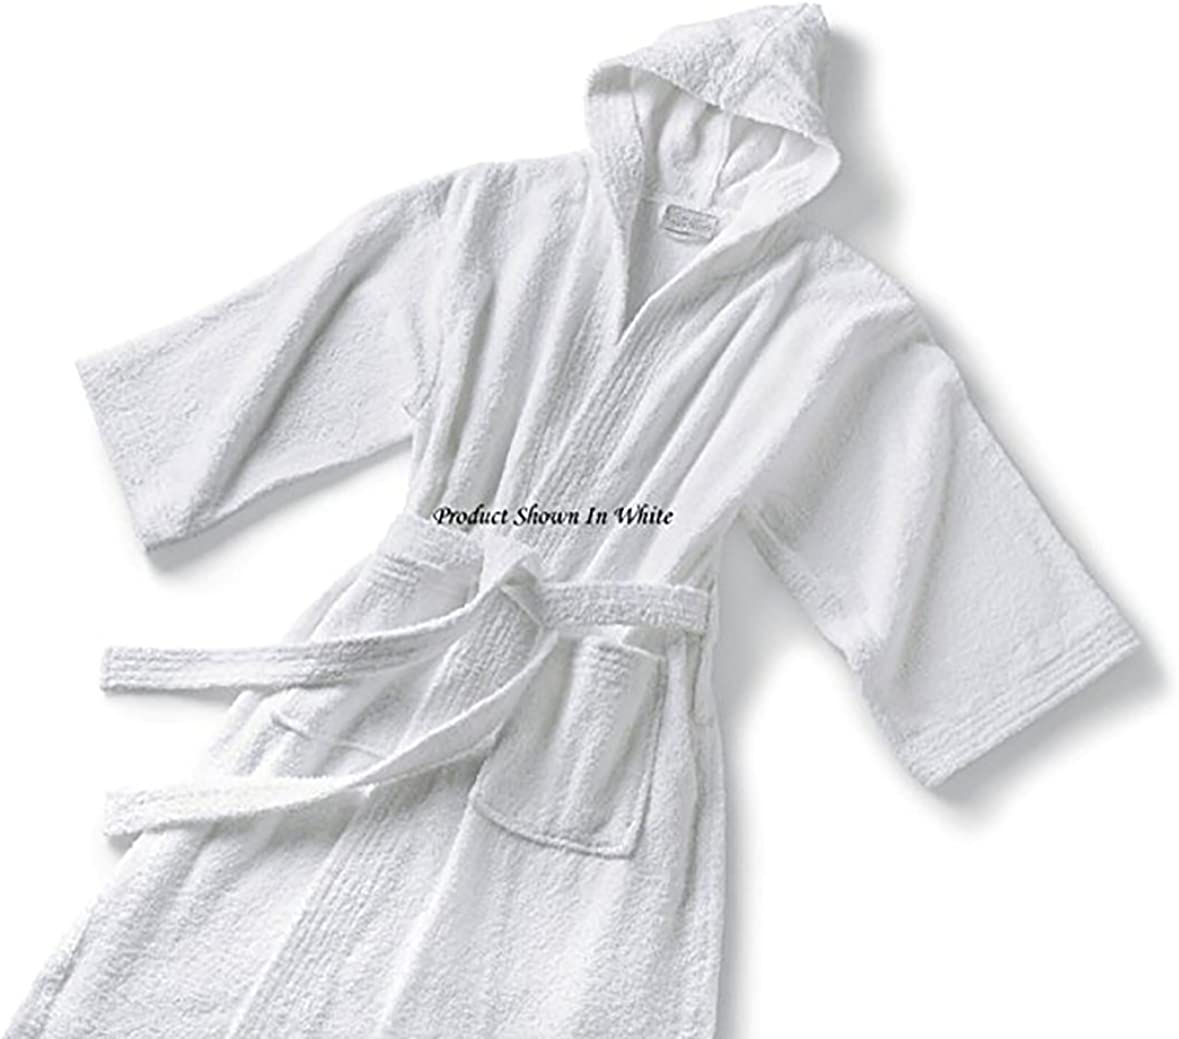 Spa and Resort Hooded Terry Bathrobe 9 Colors Available Full Length 51 Inches